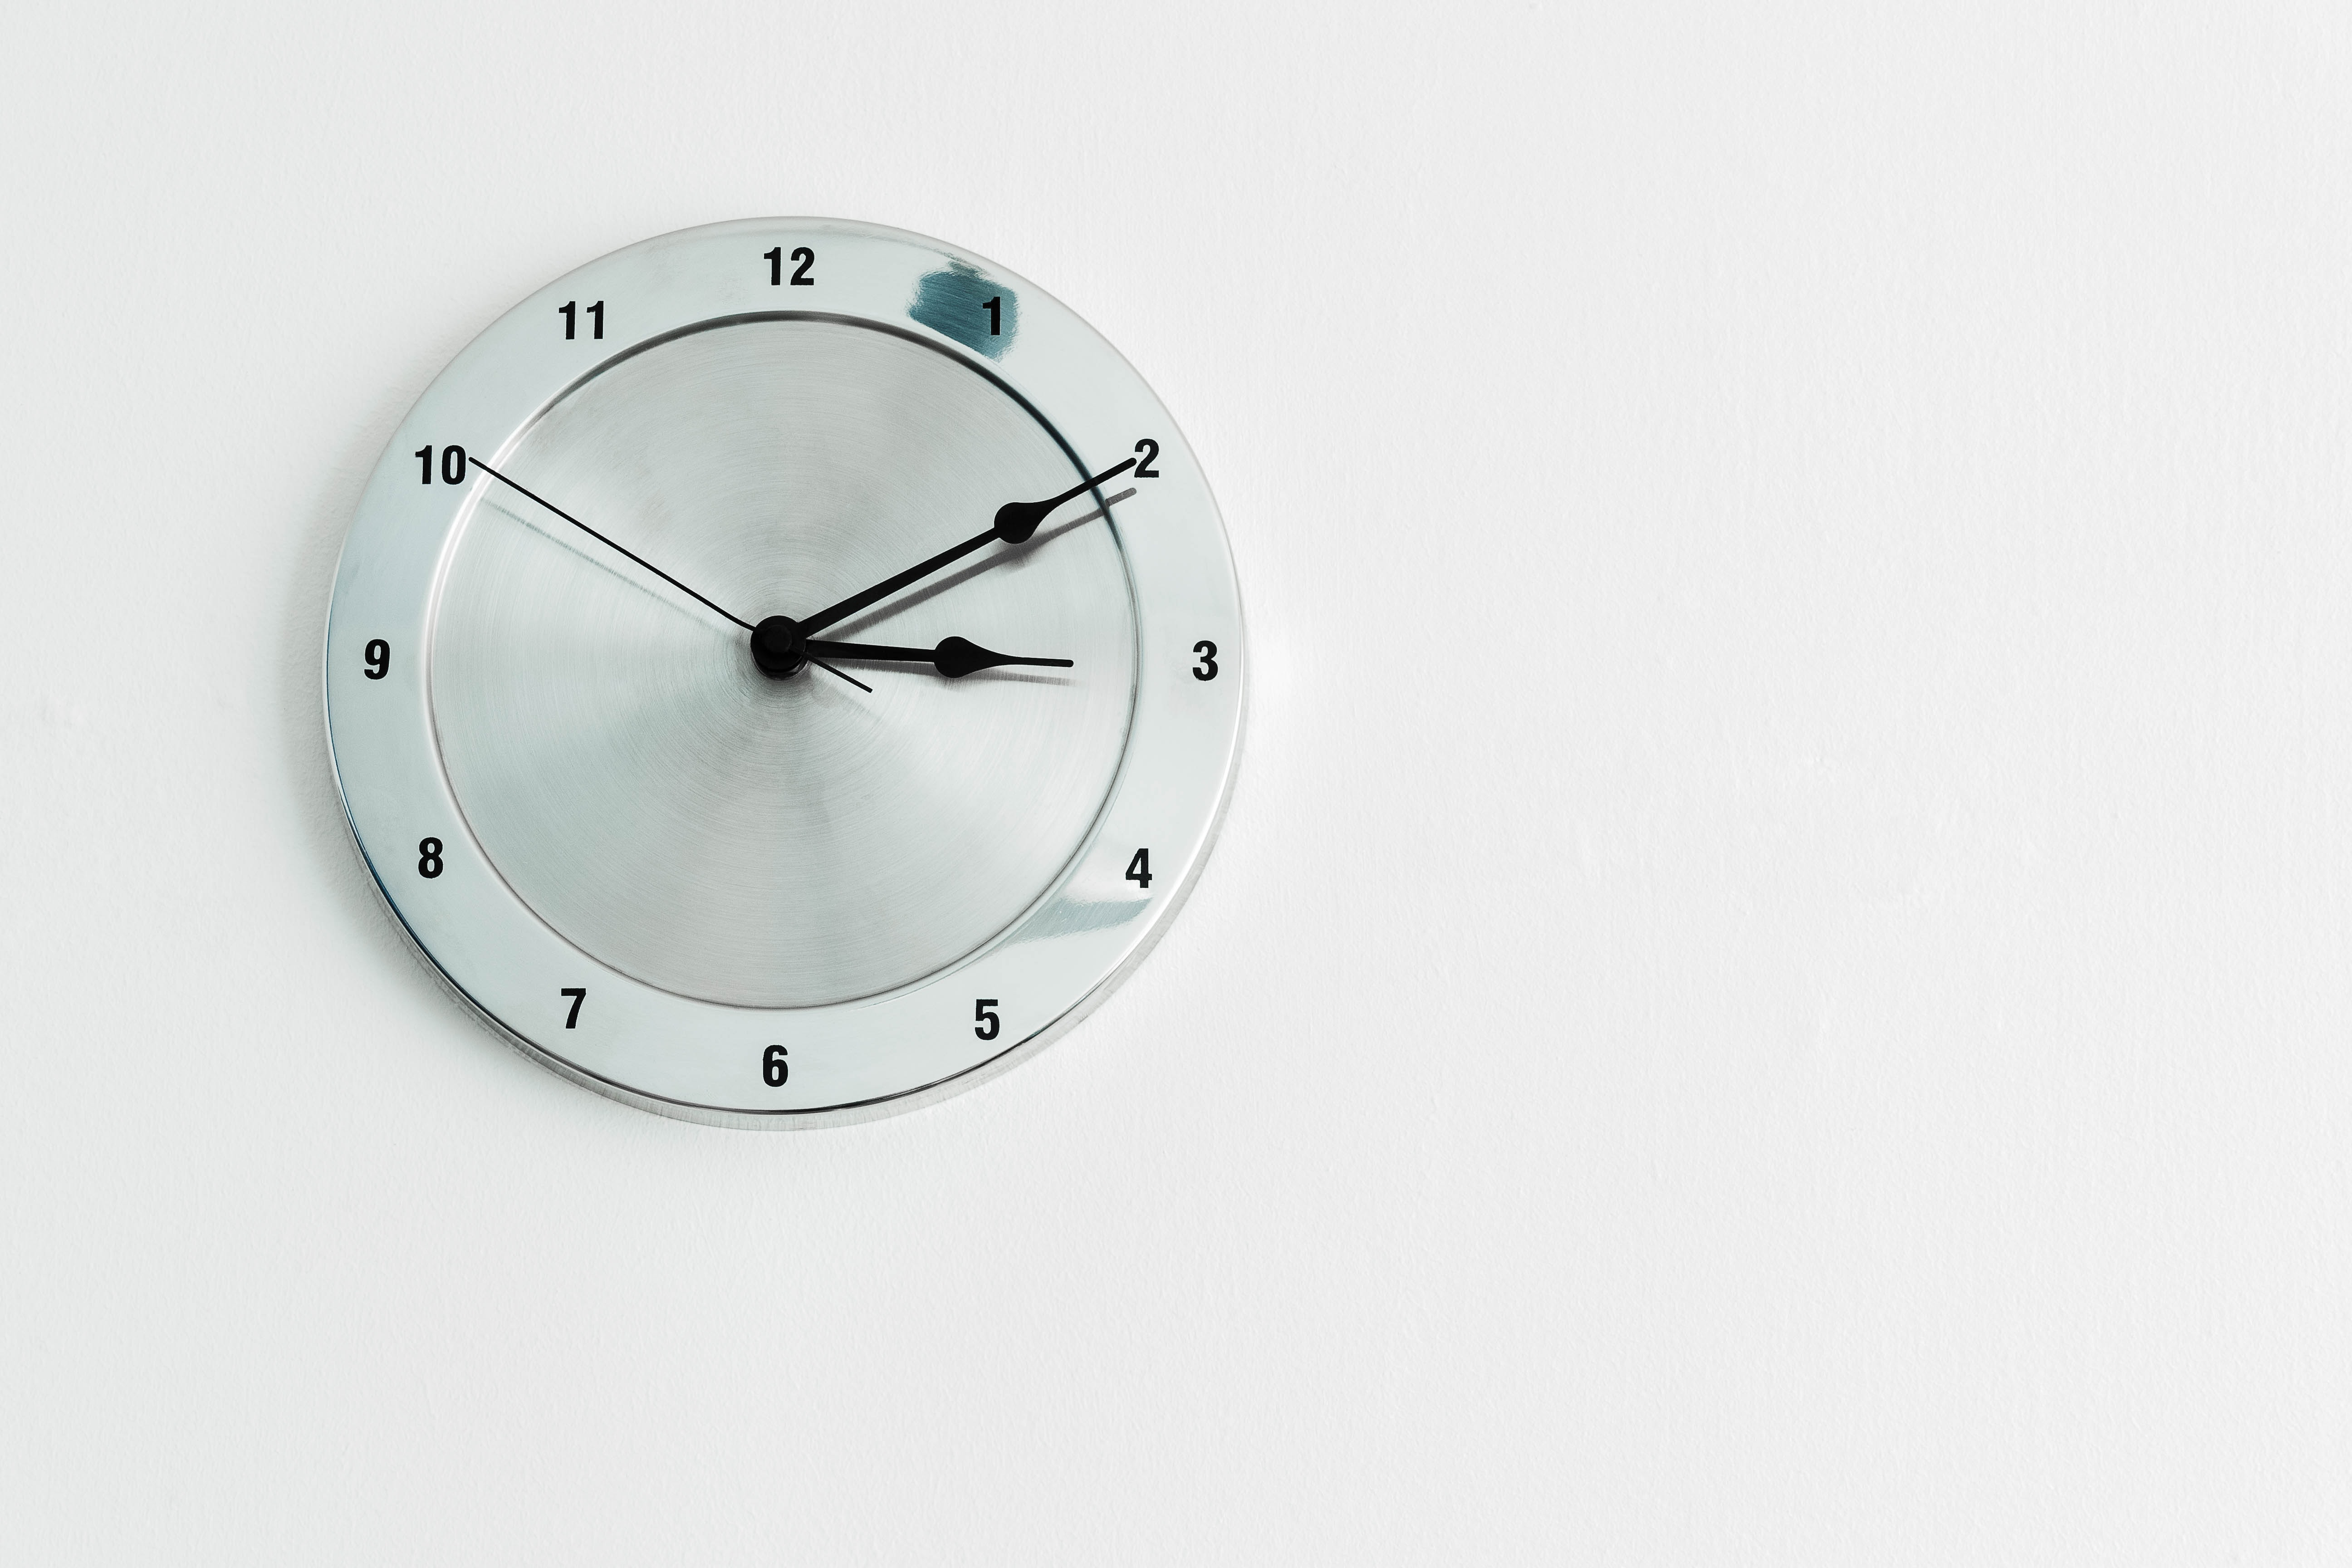 round stainless steel analog wall clock displaying 3:10 time